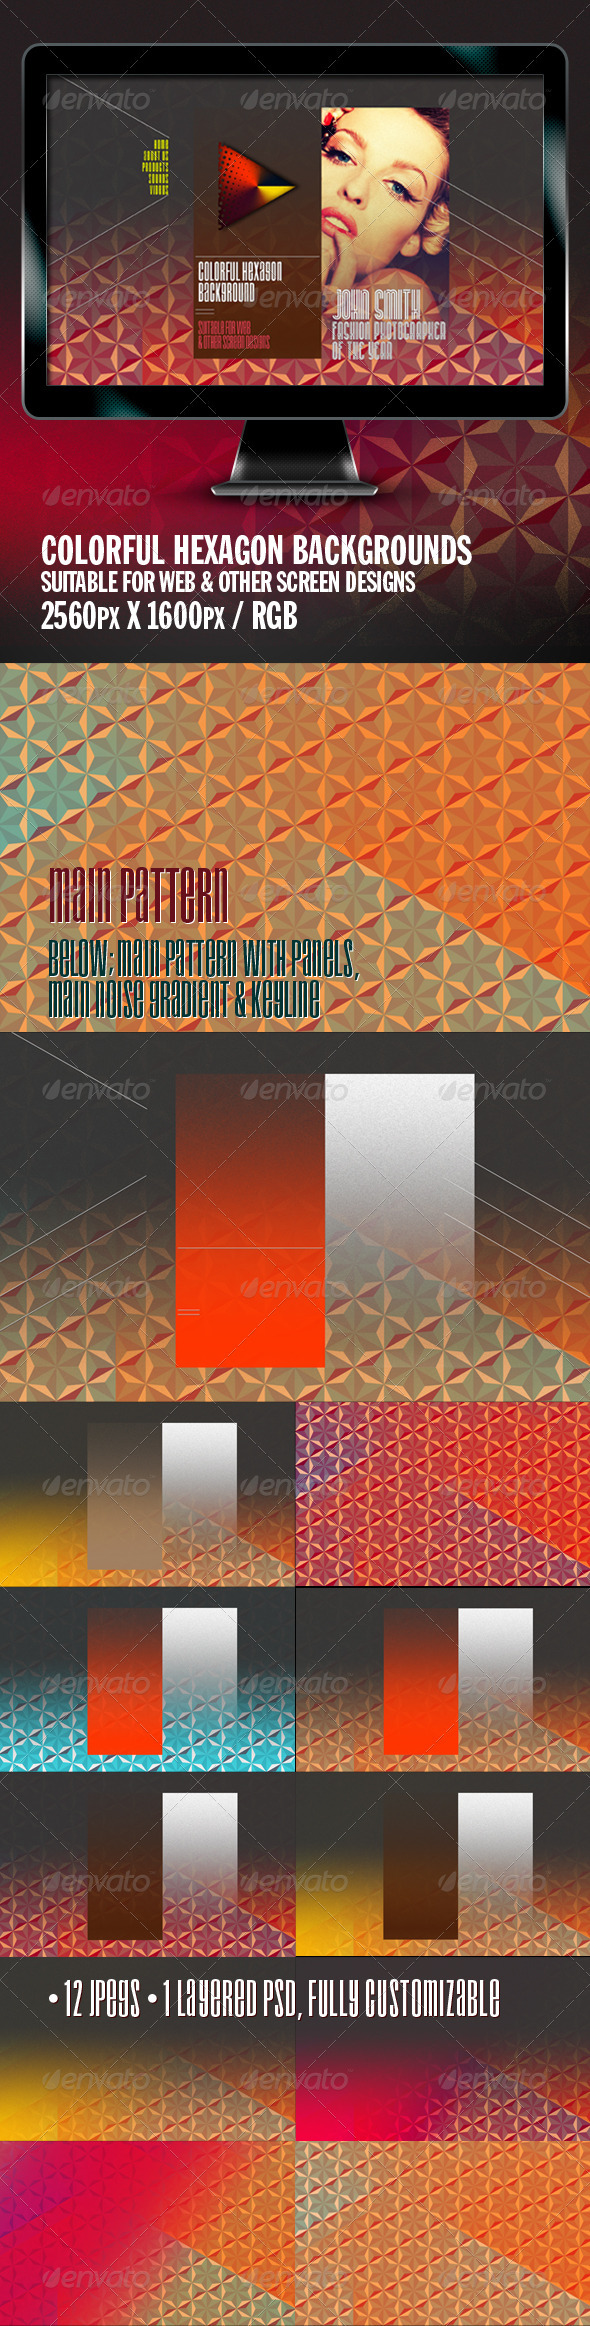 Colorful Hexagon Background - Backgrounds Graphics